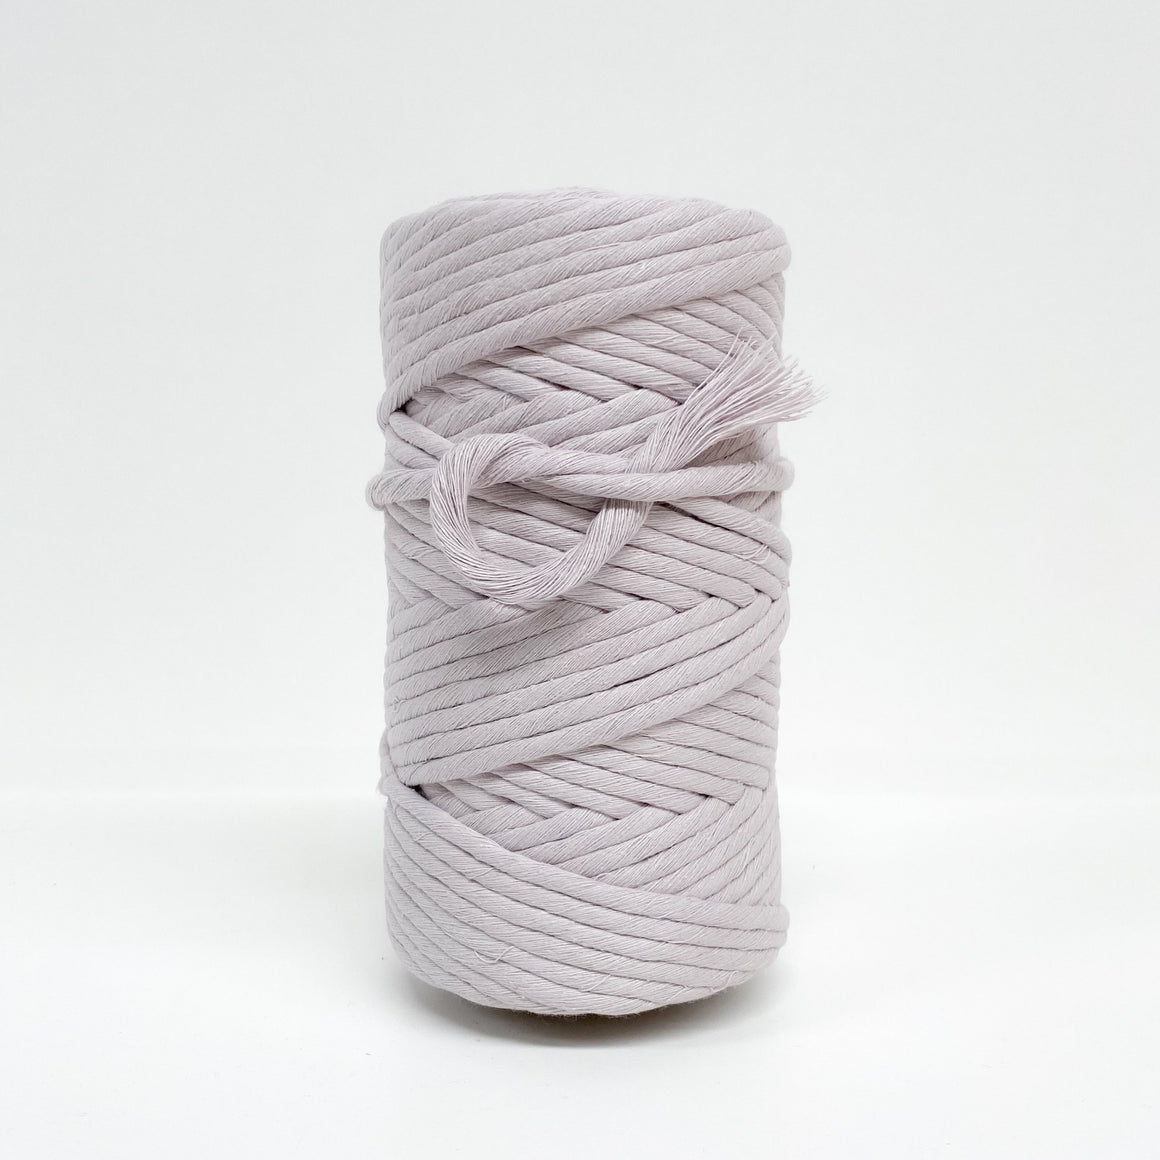 Mary Maker Studio Luxe Colour Cotton 8mm 1KG 8mm Recycled Luxe Macrame String // Linen macrame cotton macrame rope macrame workshop macrame patterns macrame